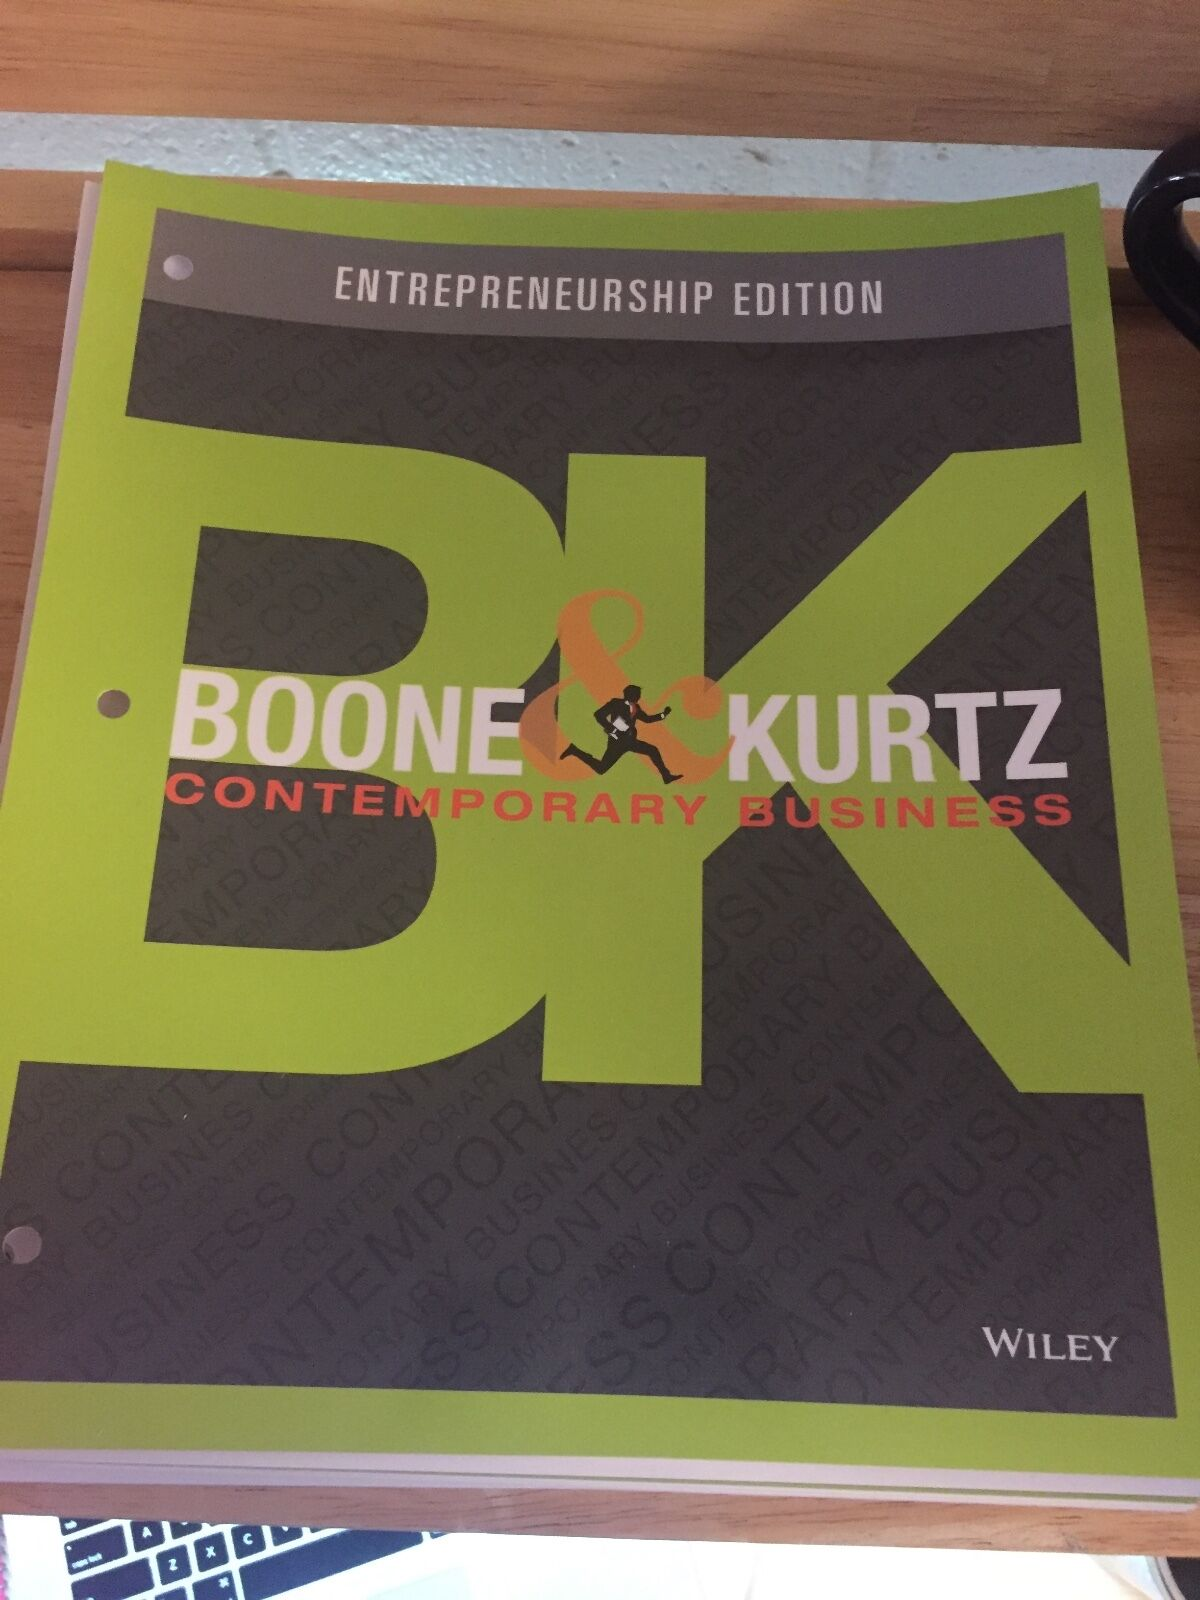 Boone and kurtz contemporary business entrepreneurship edition 16th boone and kurtz contemporary business entrepreneurship edition 16th edition 1 of 2only 1 available fandeluxe Choice Image